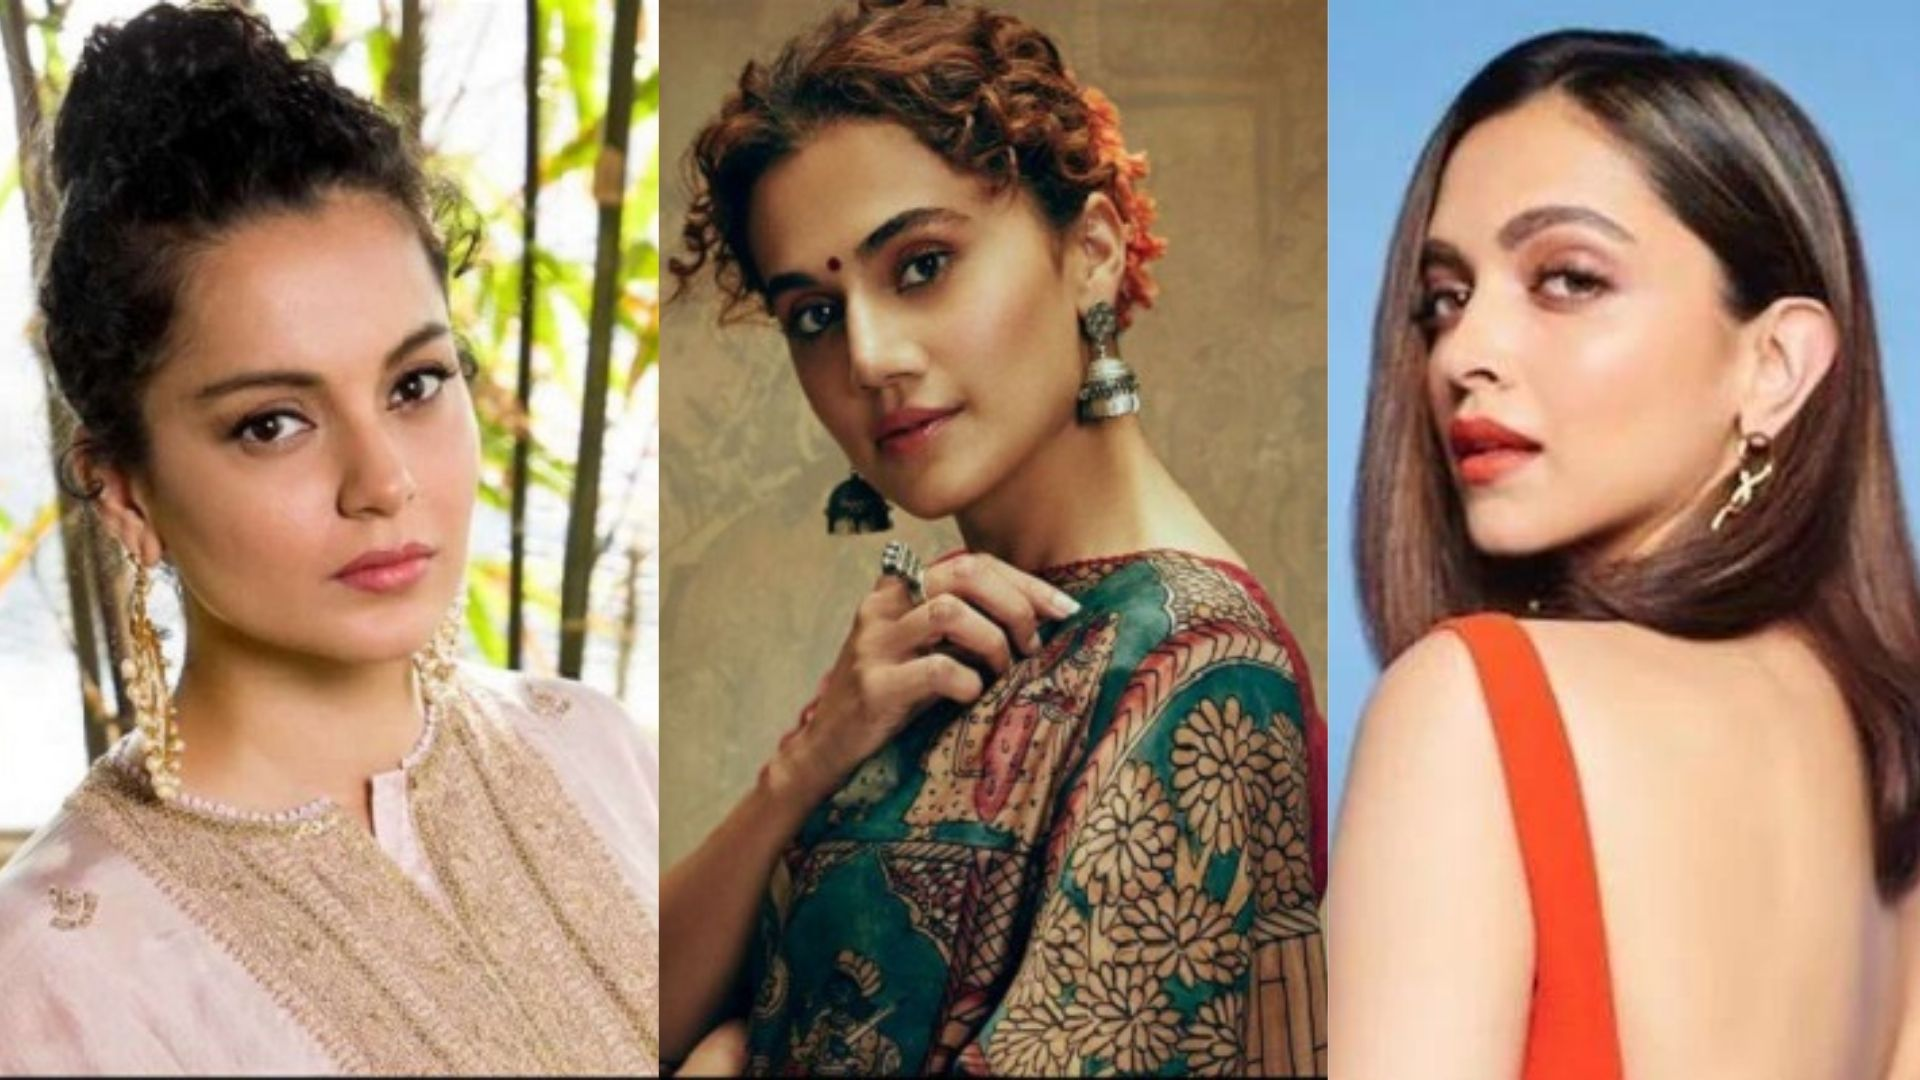 Times When Kangana Ranaut Passed Mean Comments To Taapsee Pannu, Deepika Padukone And Others